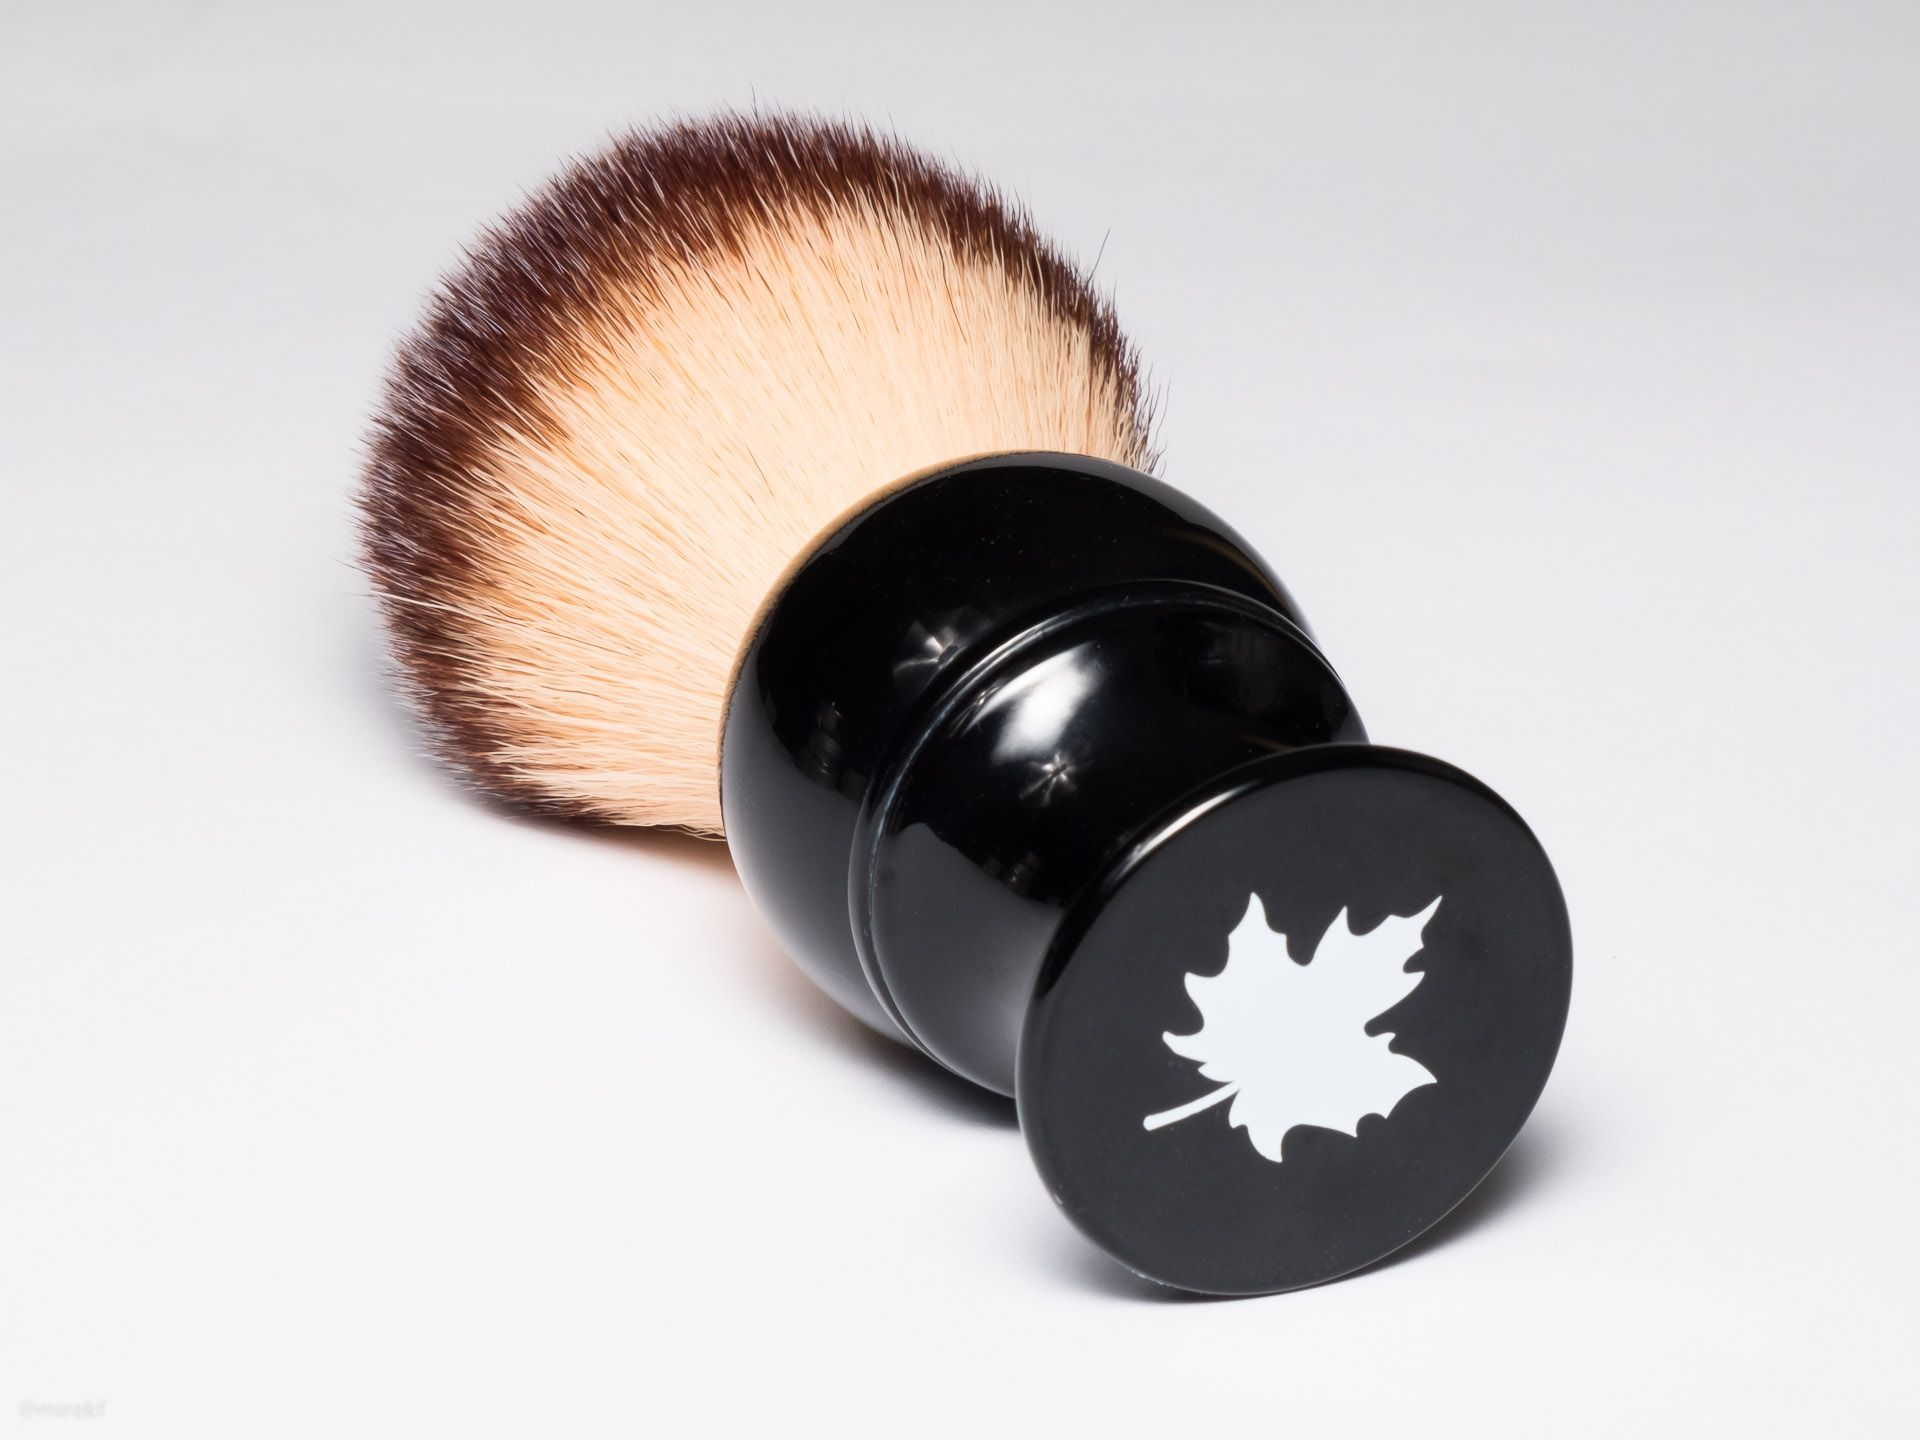 Spód rączki Maggard Razors 24mm Synthetic Shaving Brush, Black Handle